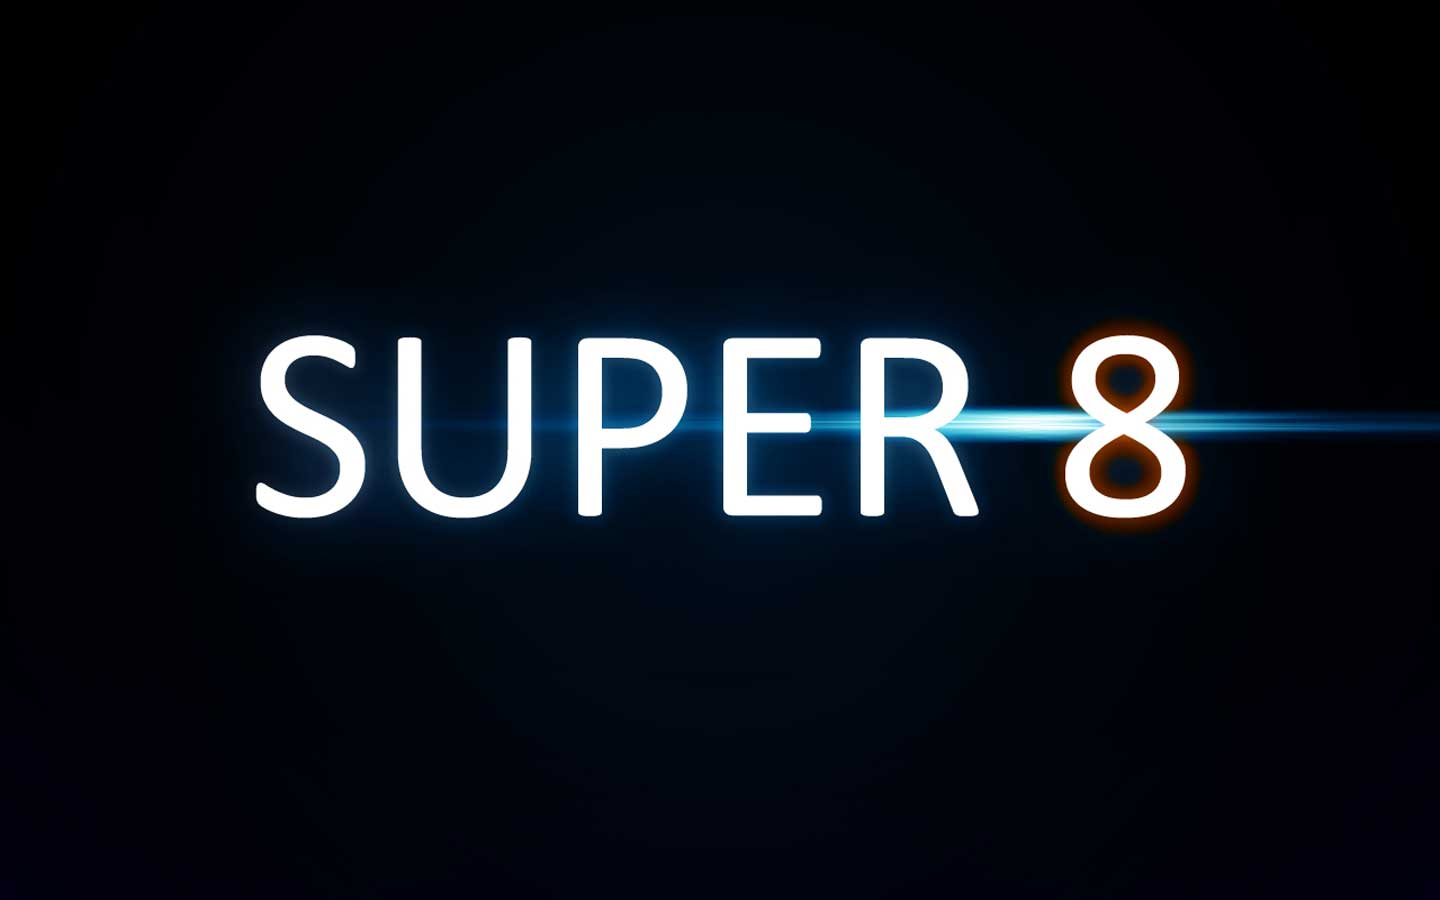 Super 8 Logo Wallpaper